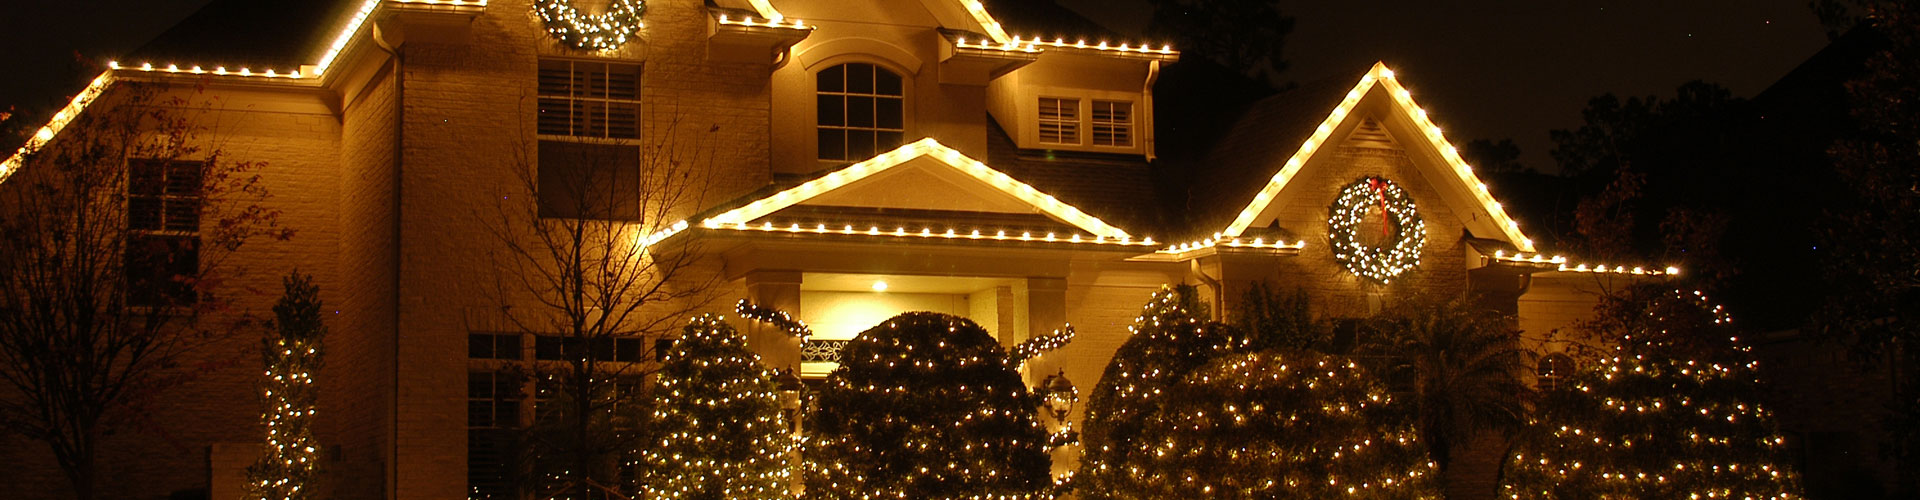 outdoor holiday lights red outdoor lighting perspectives of memphis offers the best in outdoor holiday lighting and décor our fullservice approach will get your home or business tn holiday